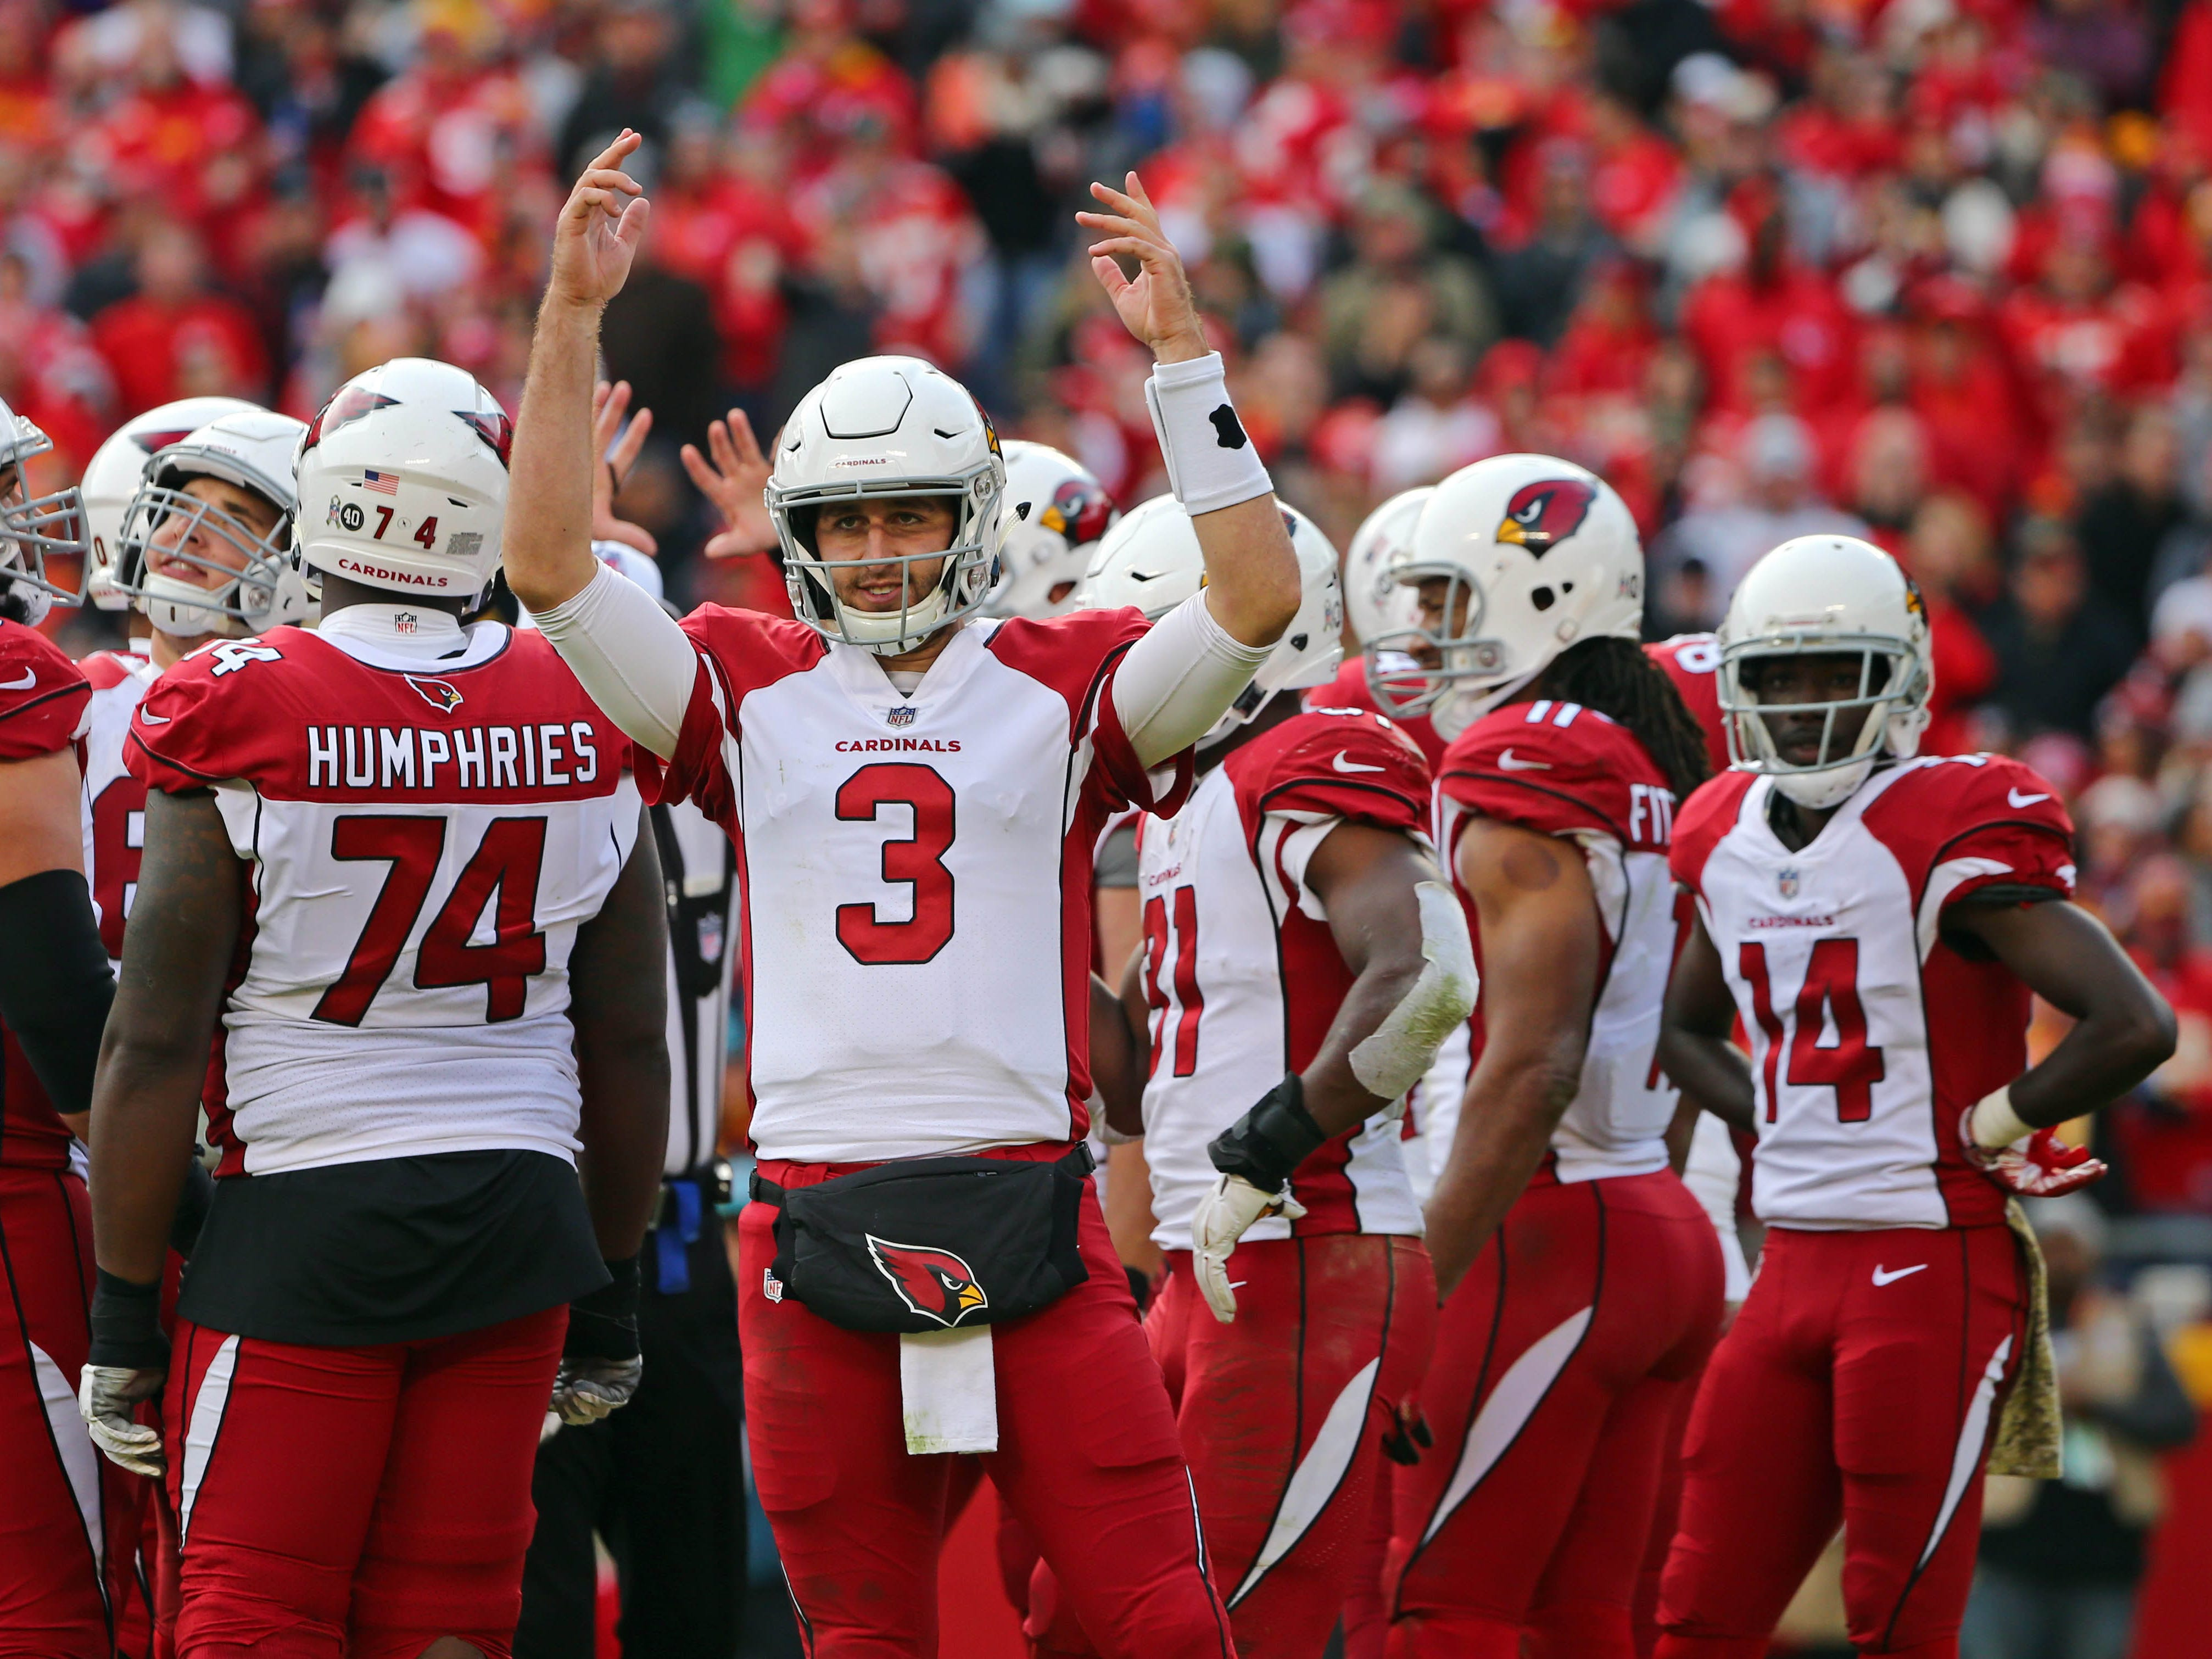 Nov 11, 2018; Kansas City, MO, USA; Arizona Cardinals quarterback Josh Rosen (3) reacts to the crowd in the second half against the Kansas City Chiefs at Arrowhead Stadium. Mandatory Credit: Jay Biggerstaff-USA TODAY Sports